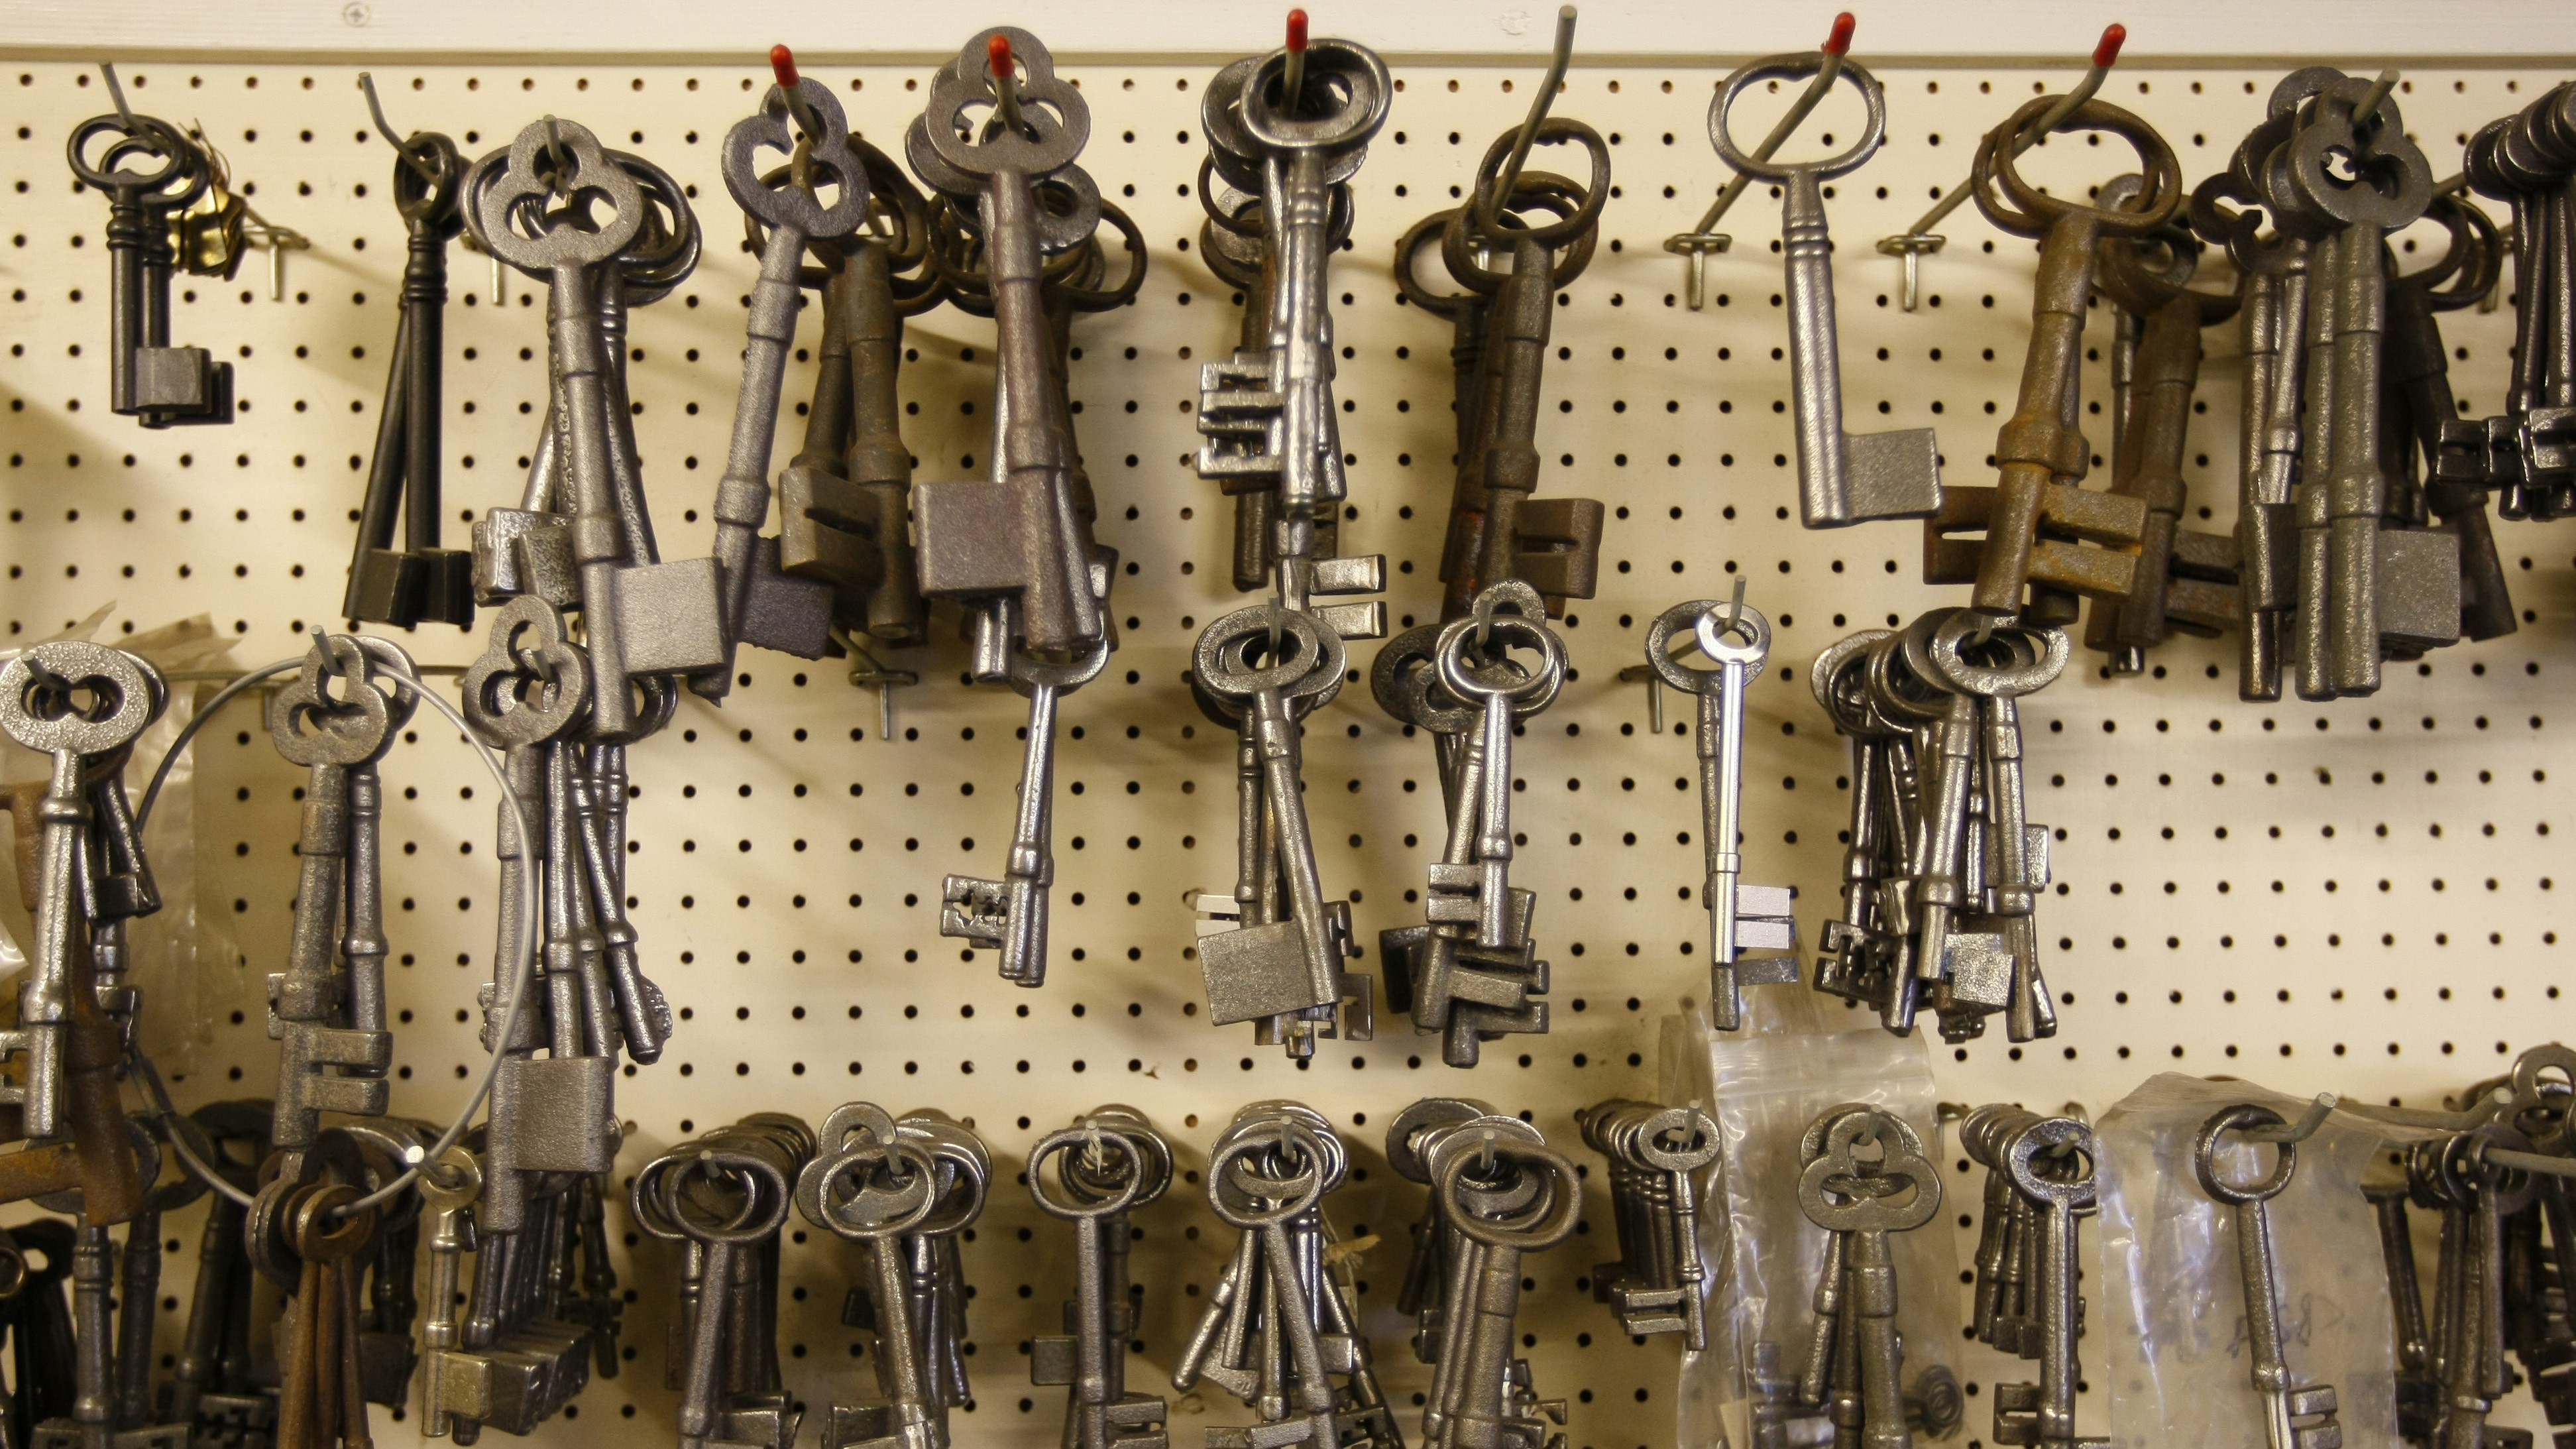 Key blanks hang on pegs at a lock and key shop in Lichfield, central England, June 19, 2009.